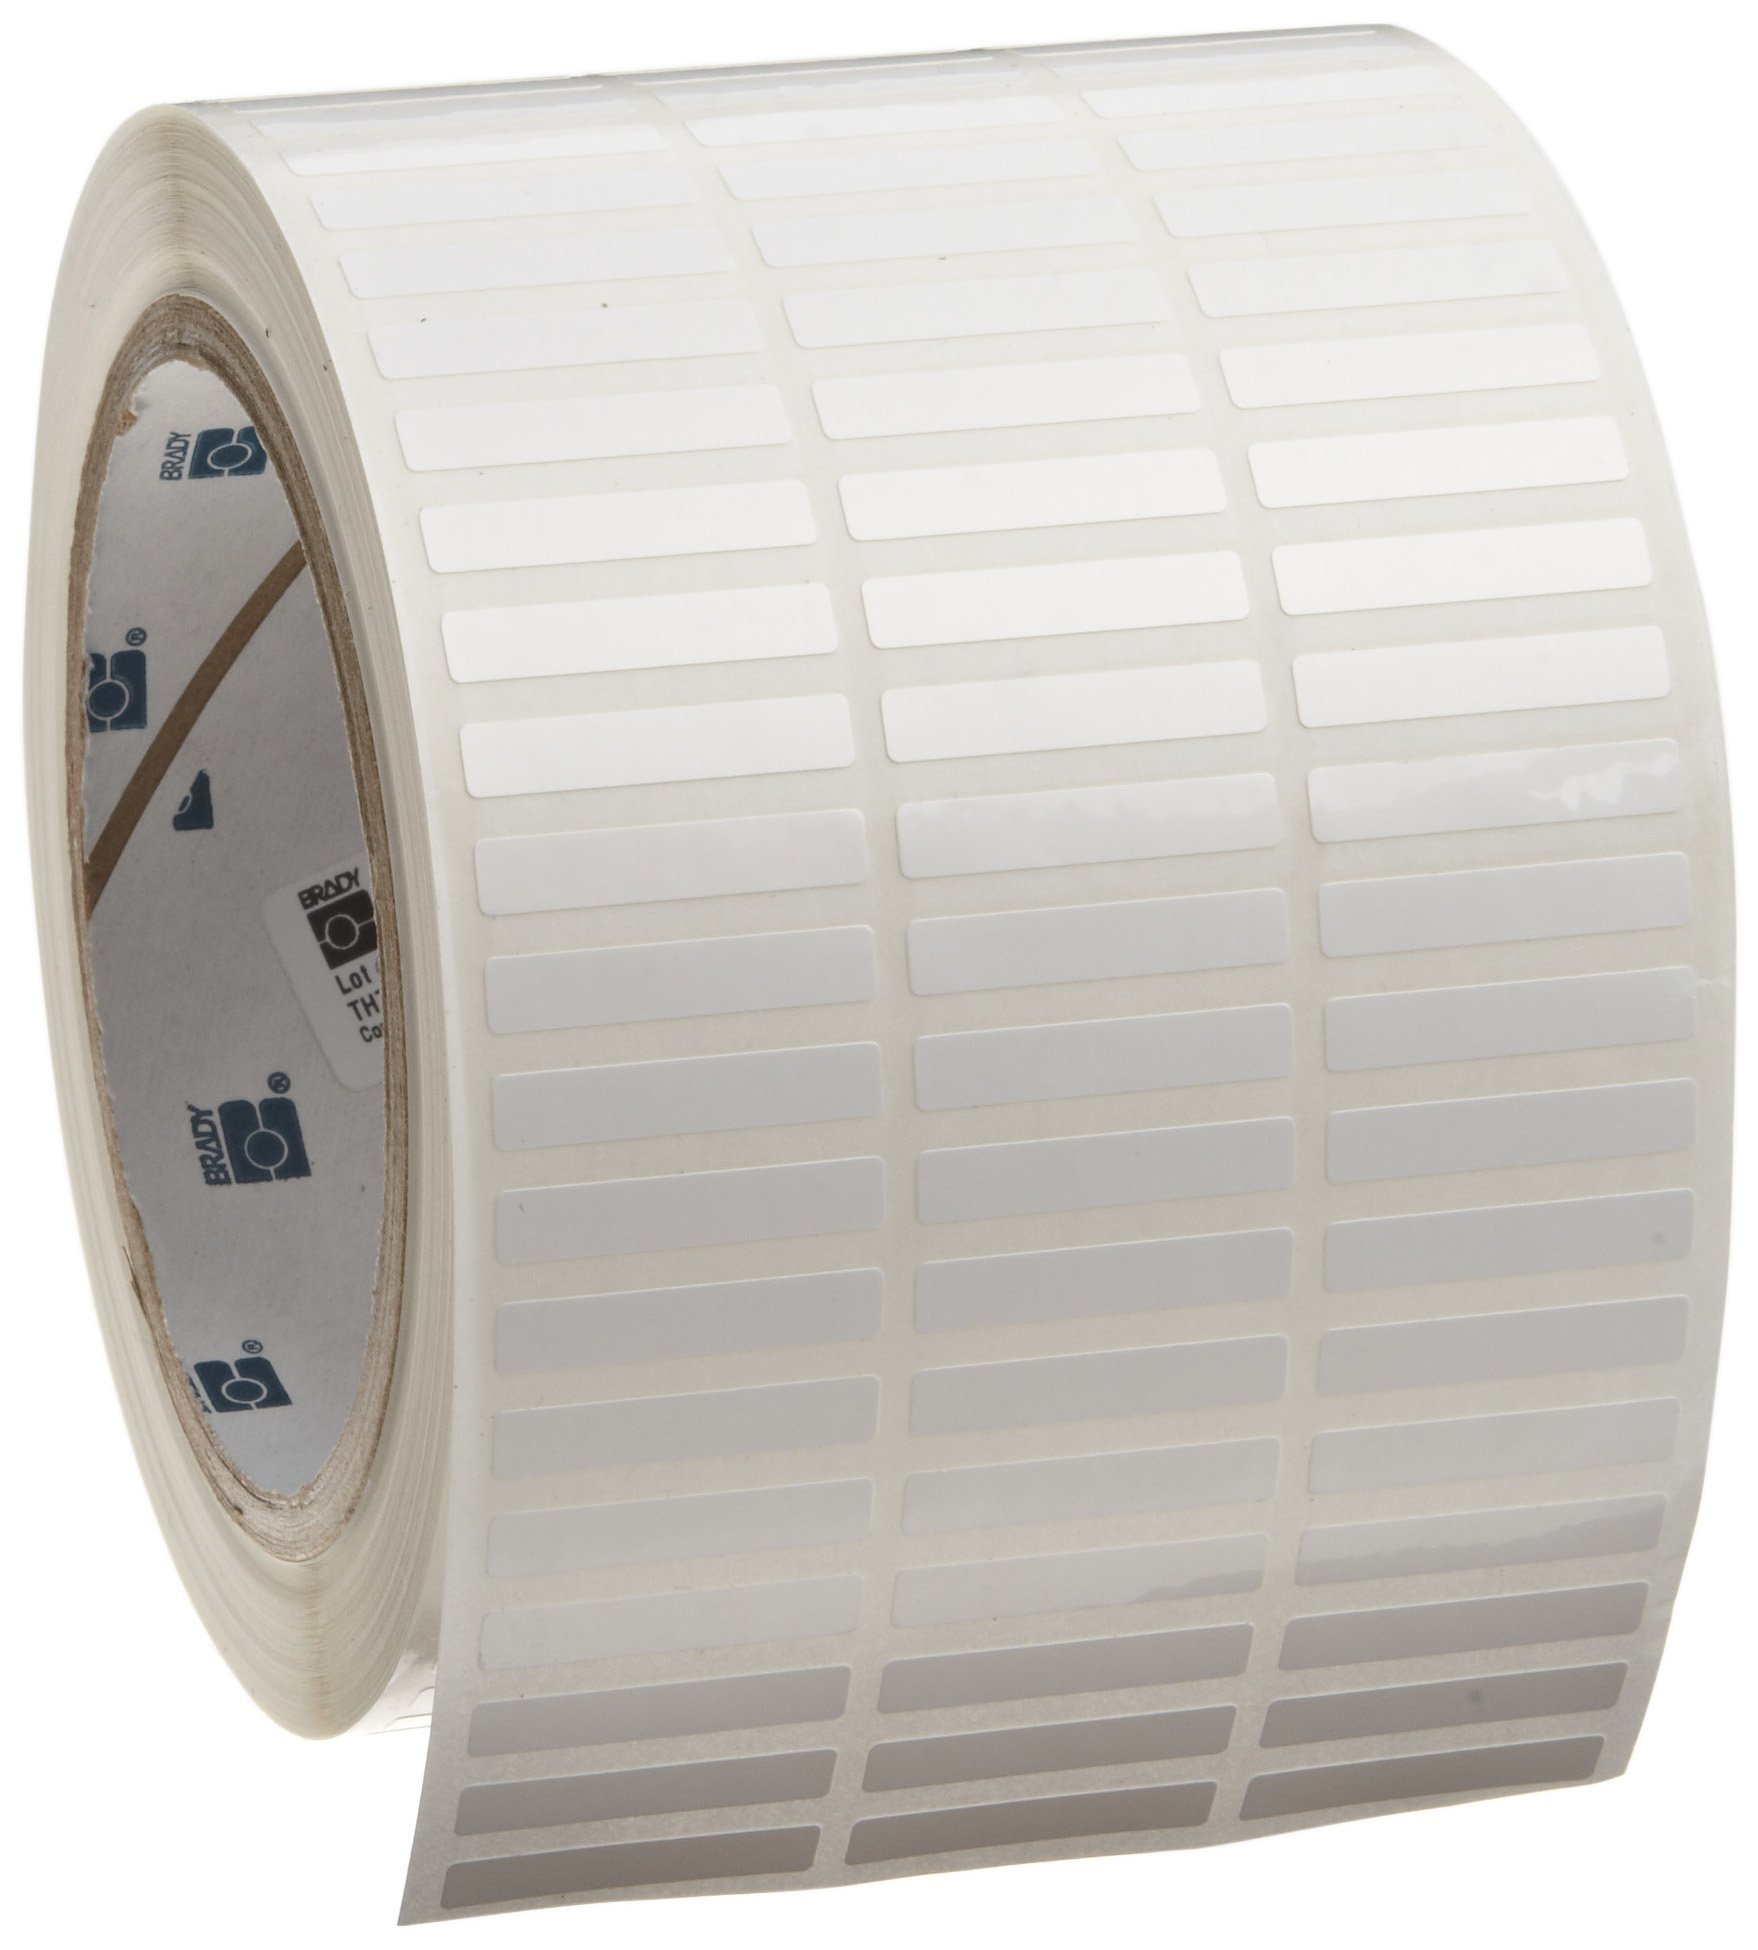 Brady THT-41-423-10 1'' Width x 0.187'' Height, B-423 Permanent Polyester, Gloss Finish White Thermal Transfer Printable Label (10000 per Roll)